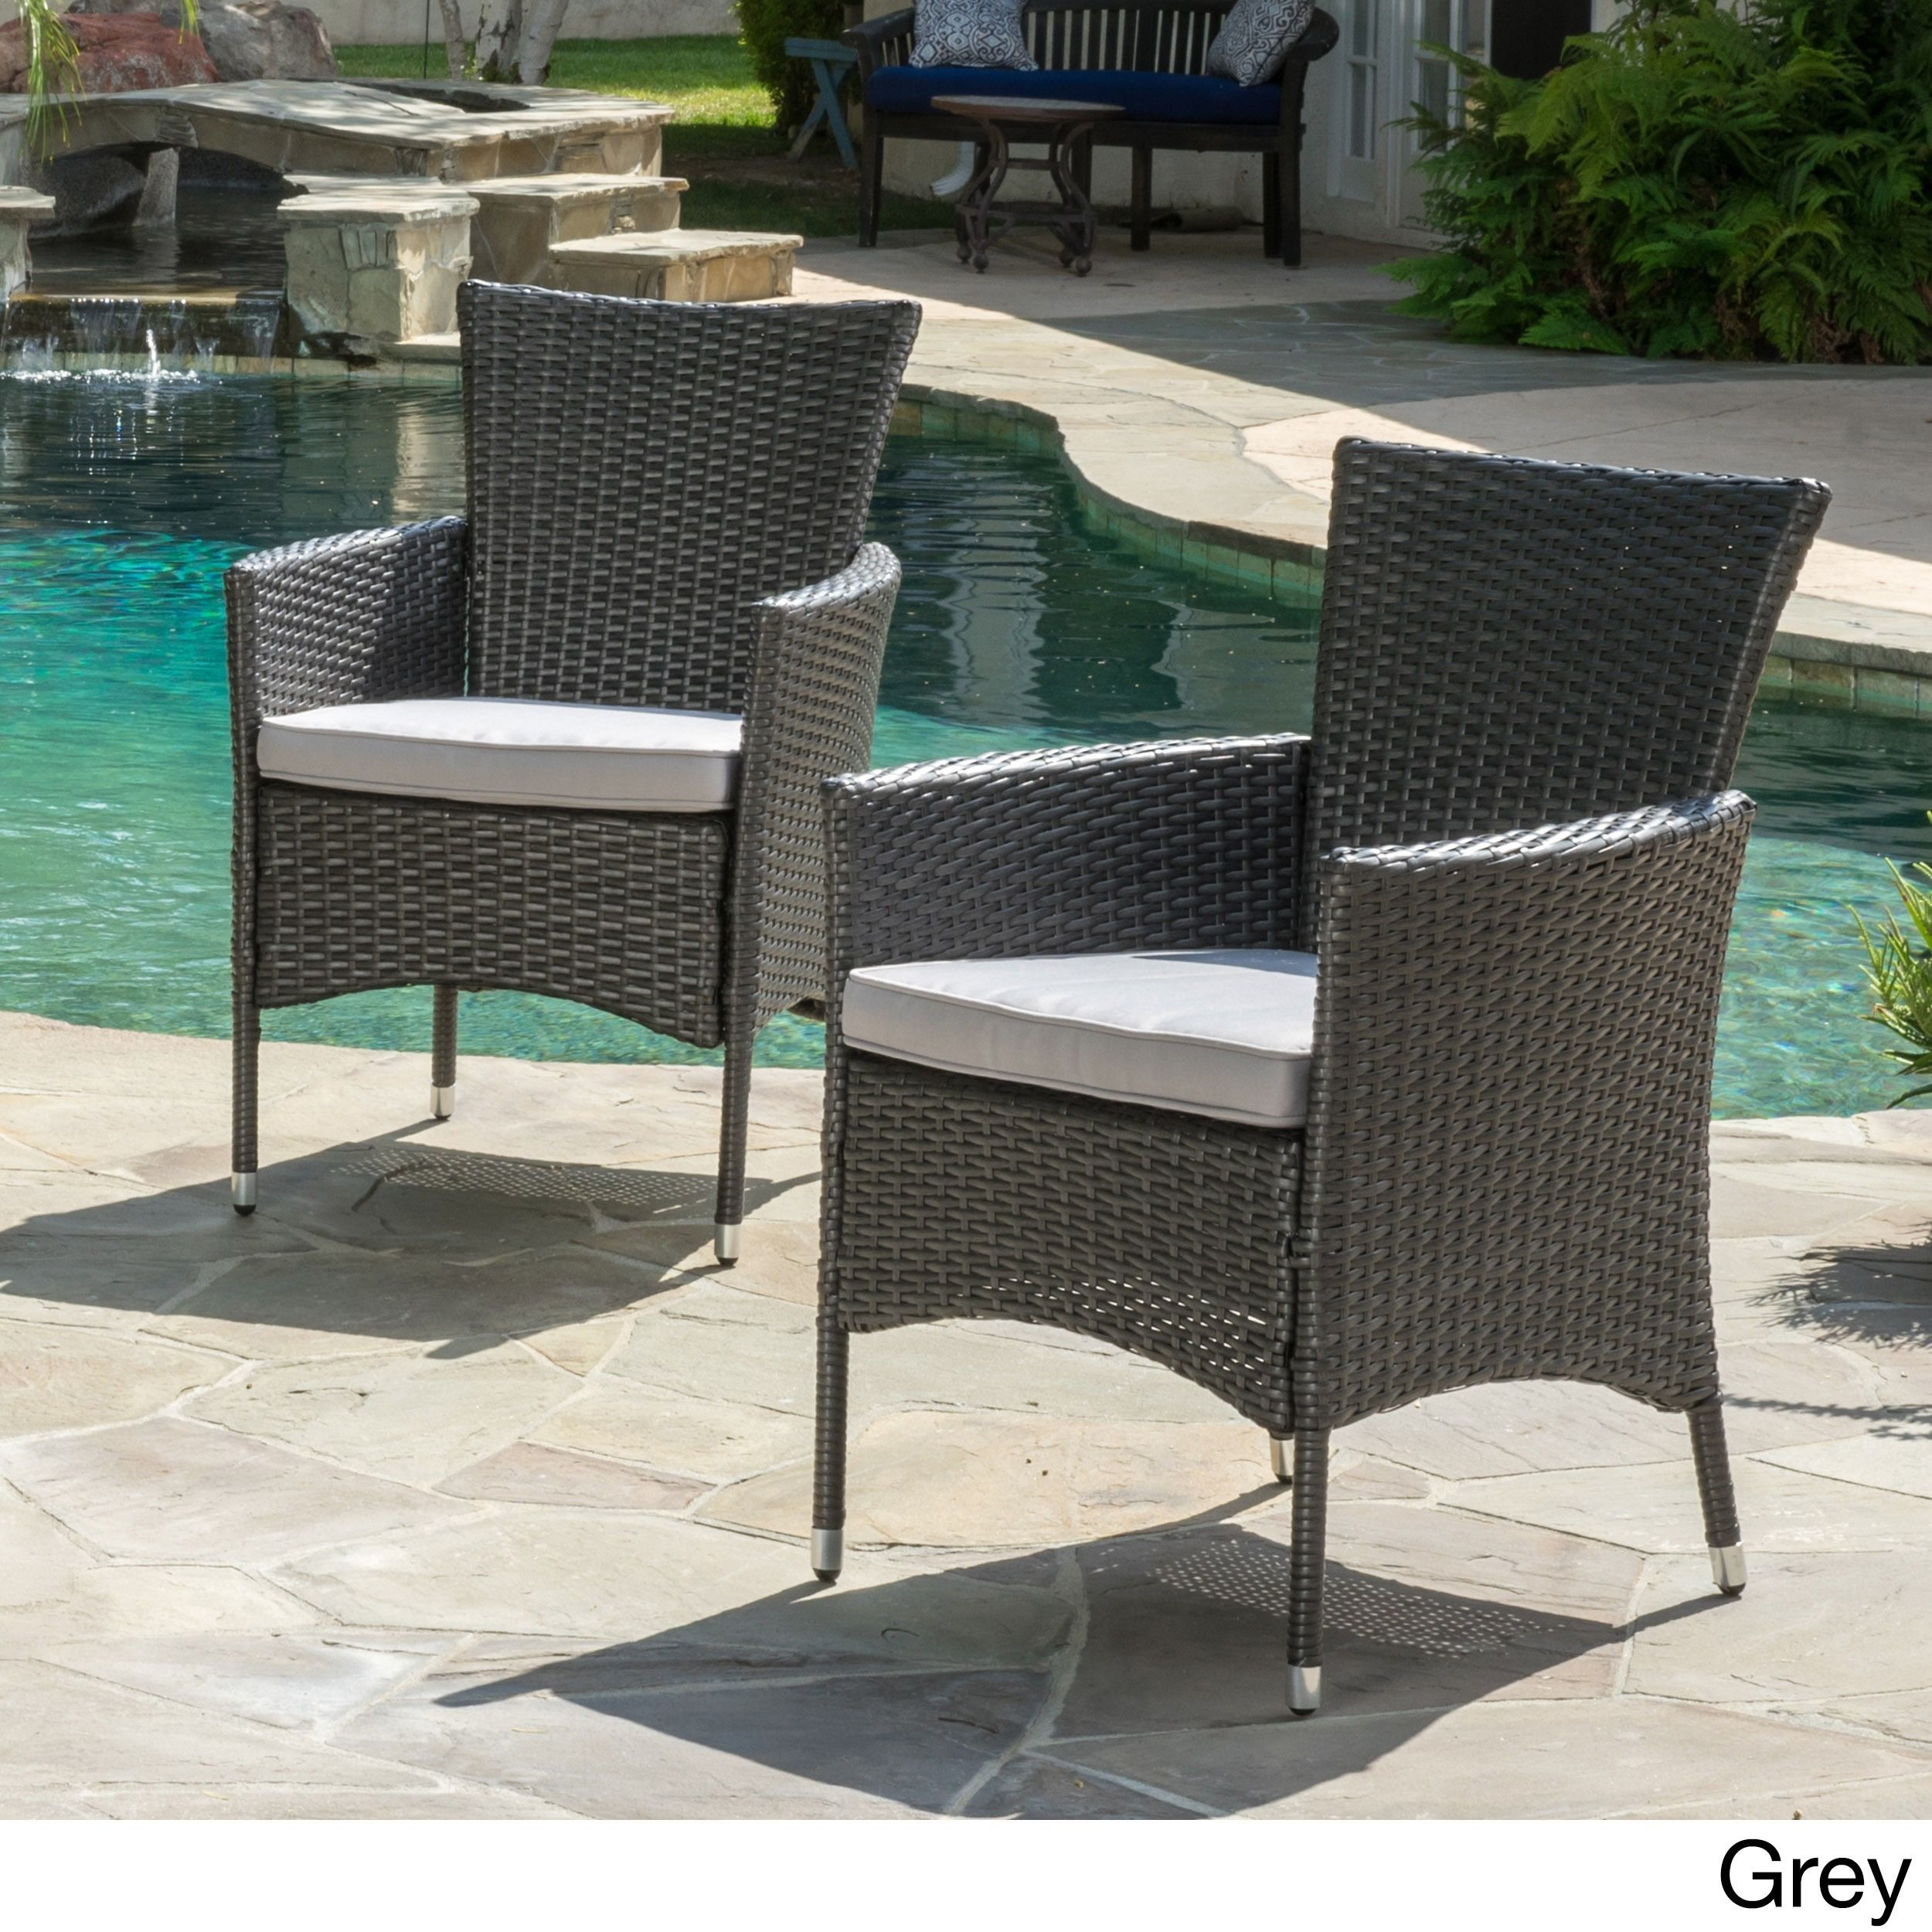 chair covers malta p company outdoor wicker dining with cushions set of 2 by christopher knight home grey patio furniture